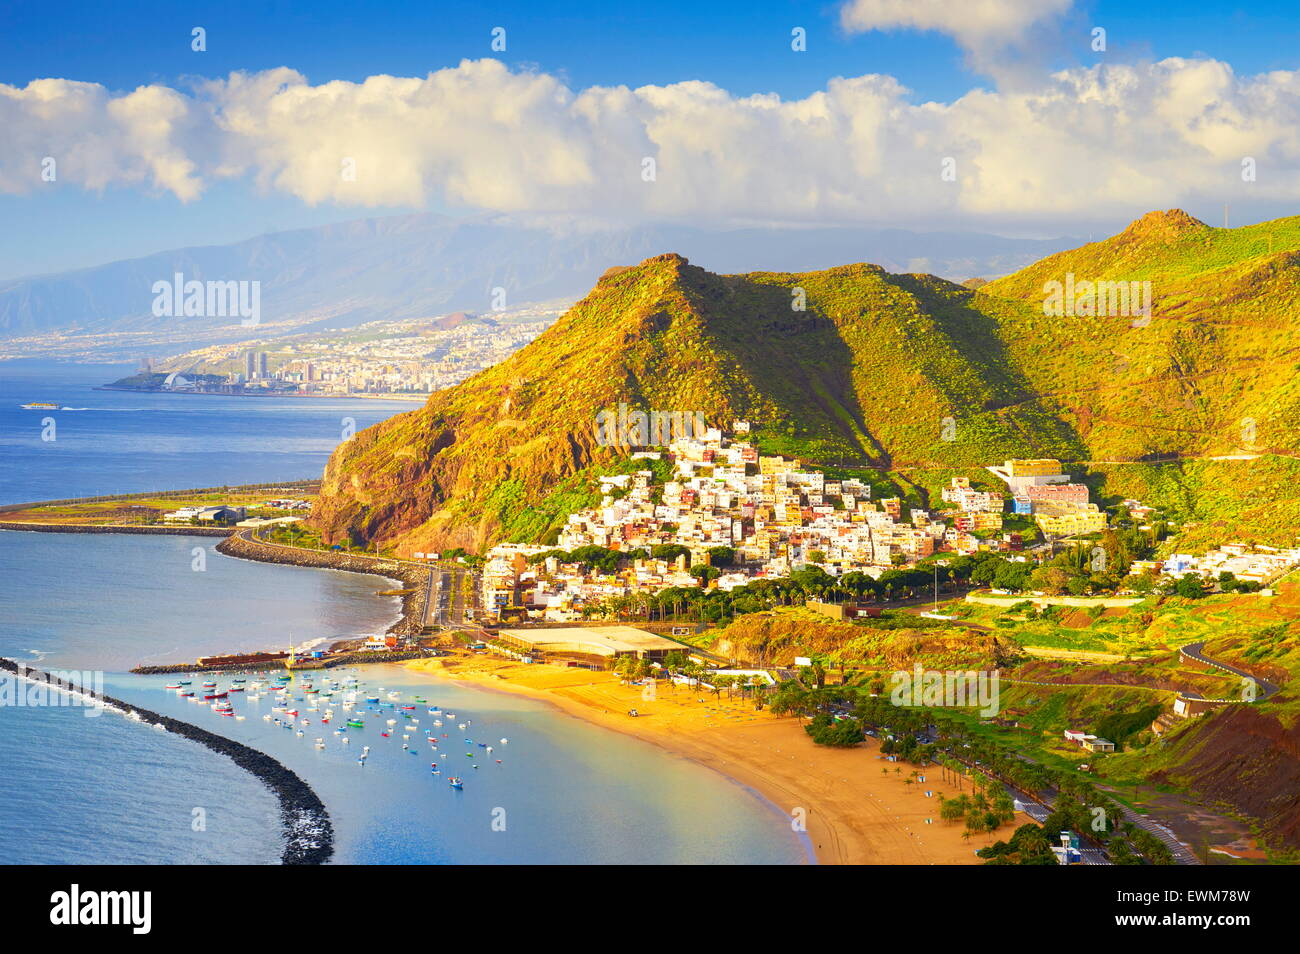 San Andres village, Tenerife, Canary Islands, Spain - Stock Image